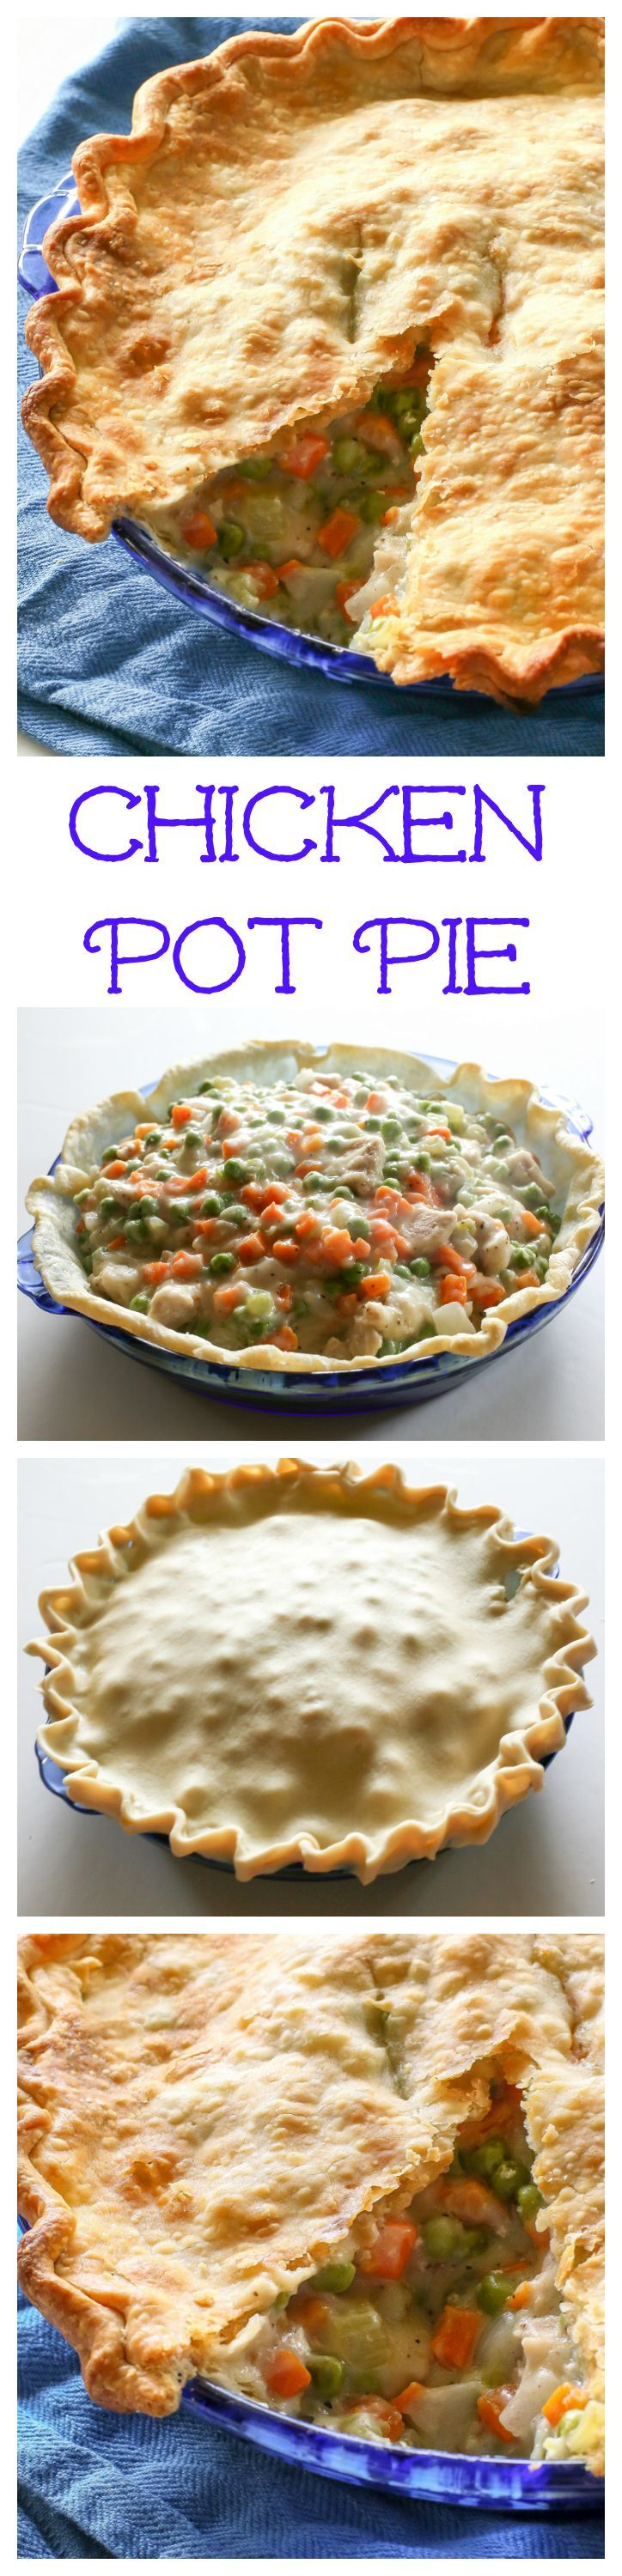 Chicken Pot Pie - a classic chicken pot pie with vegetables that is so comforting. My family loves this recipe. the-girl-who-ate-everything.com